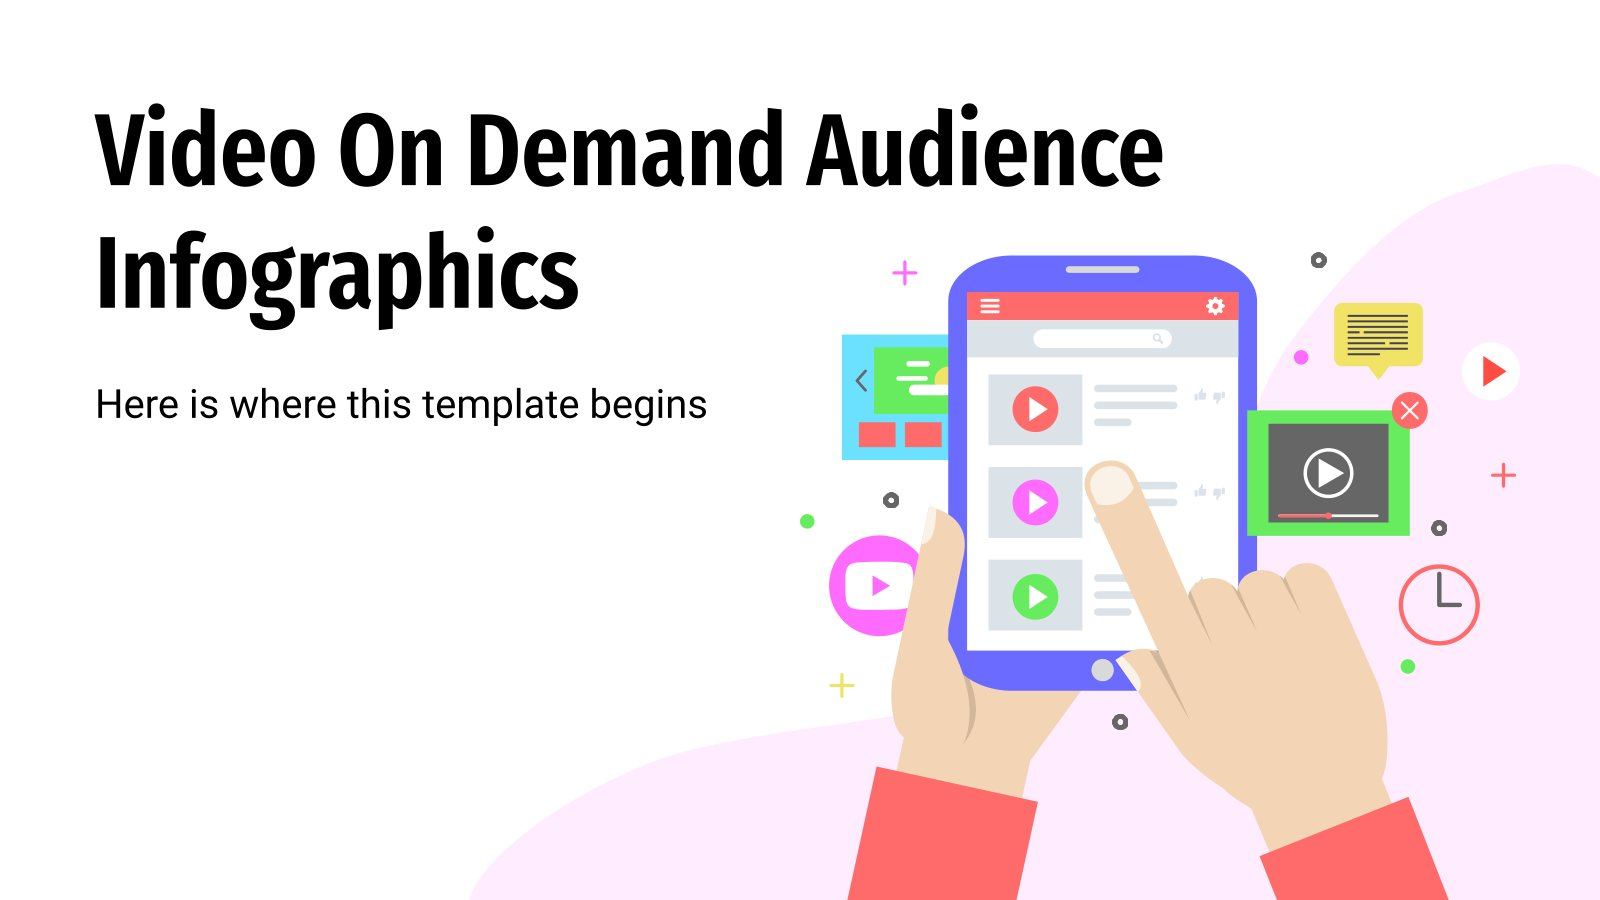 Video On Demand Audience Infographics presentation template